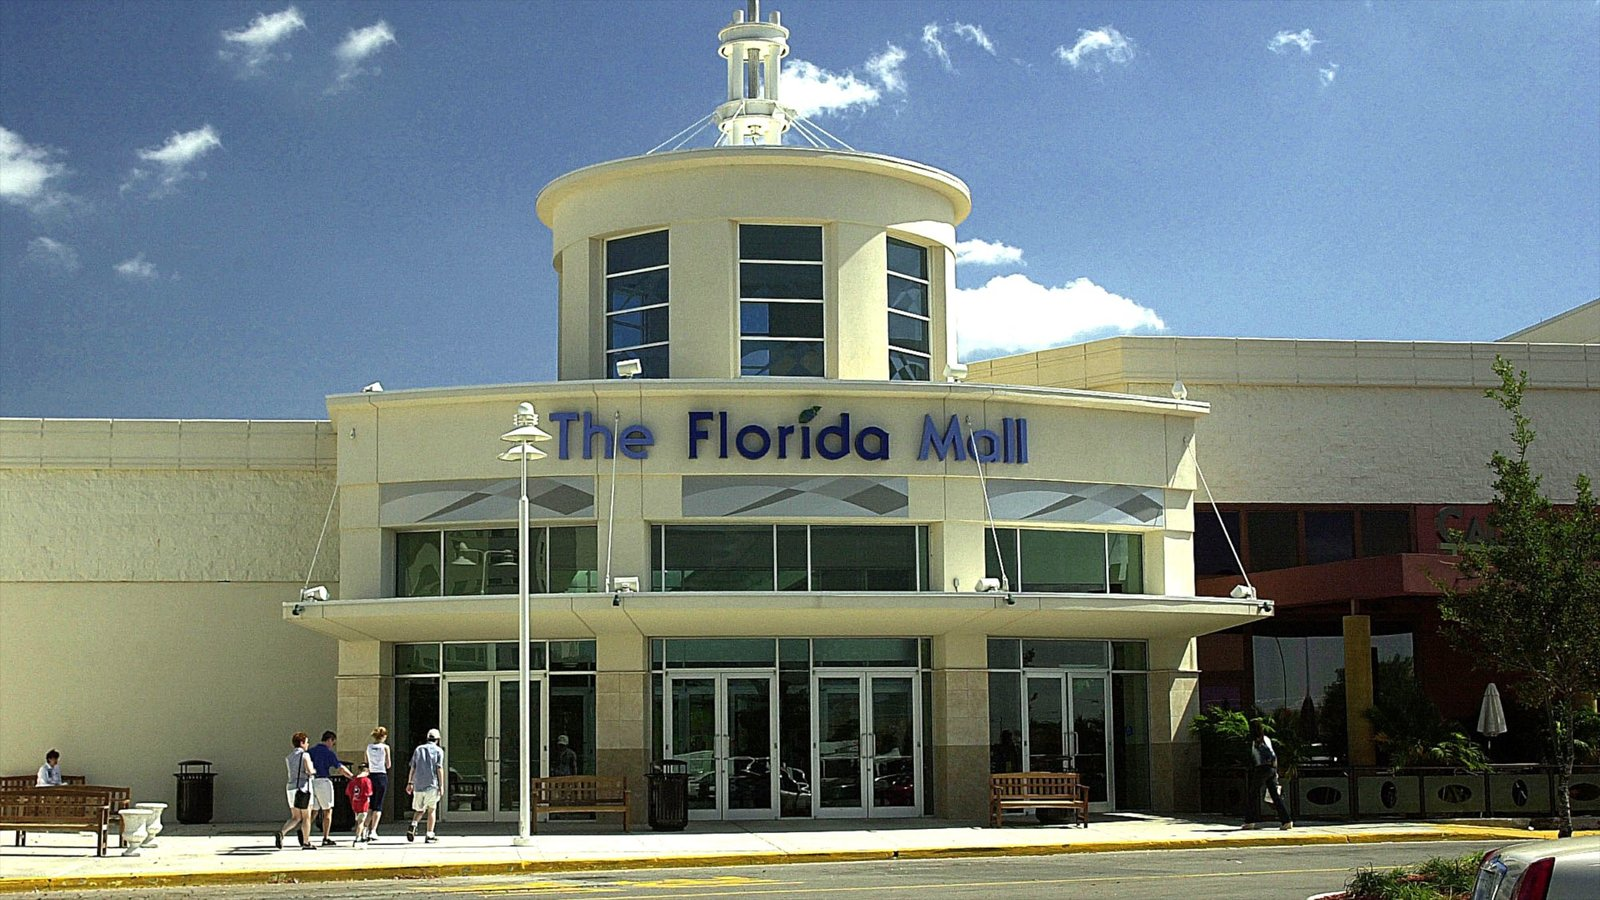 Florida Mall featuring shopping and signage